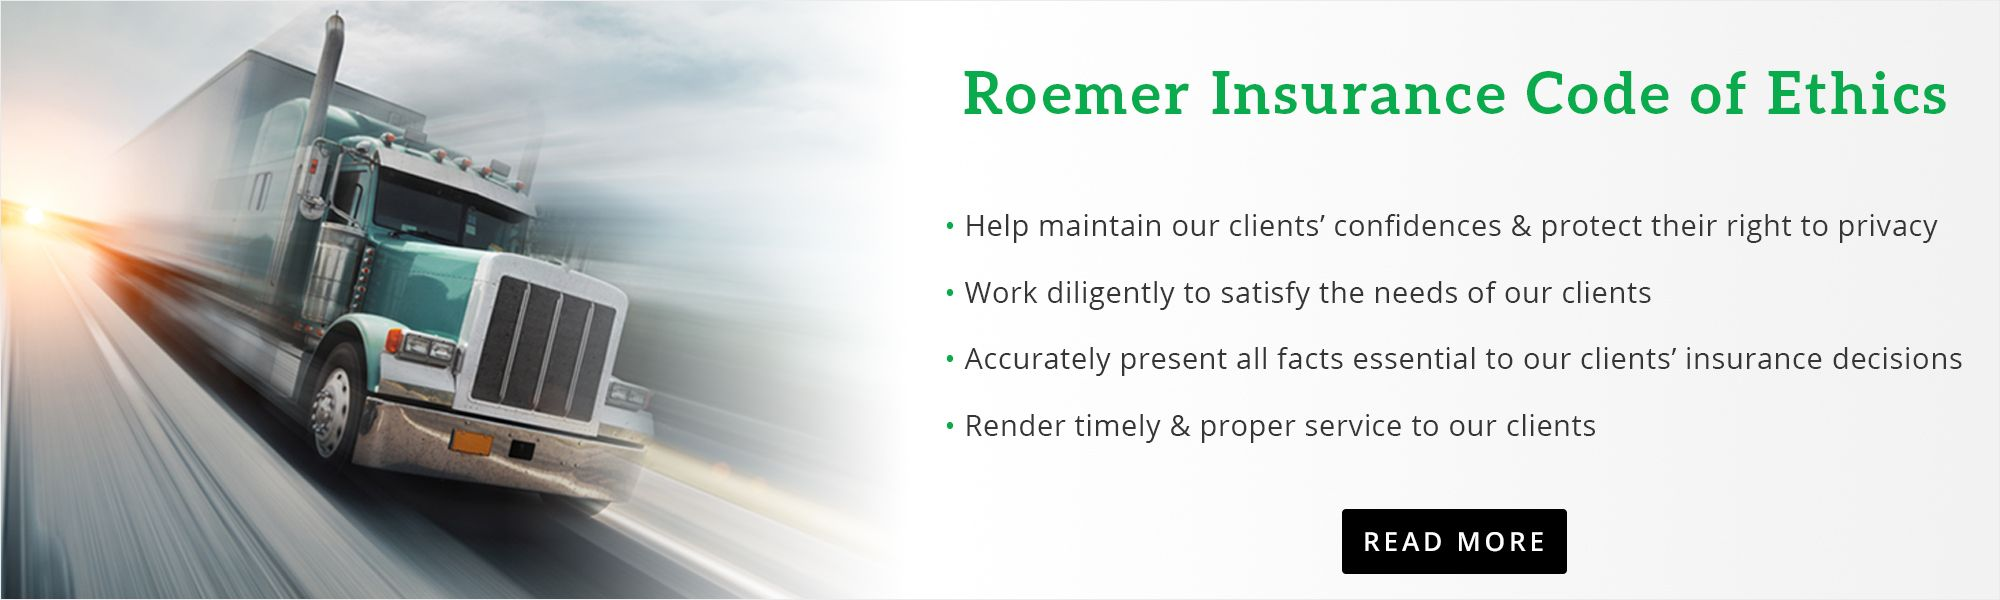 Roemer Insurance Code of Ethics